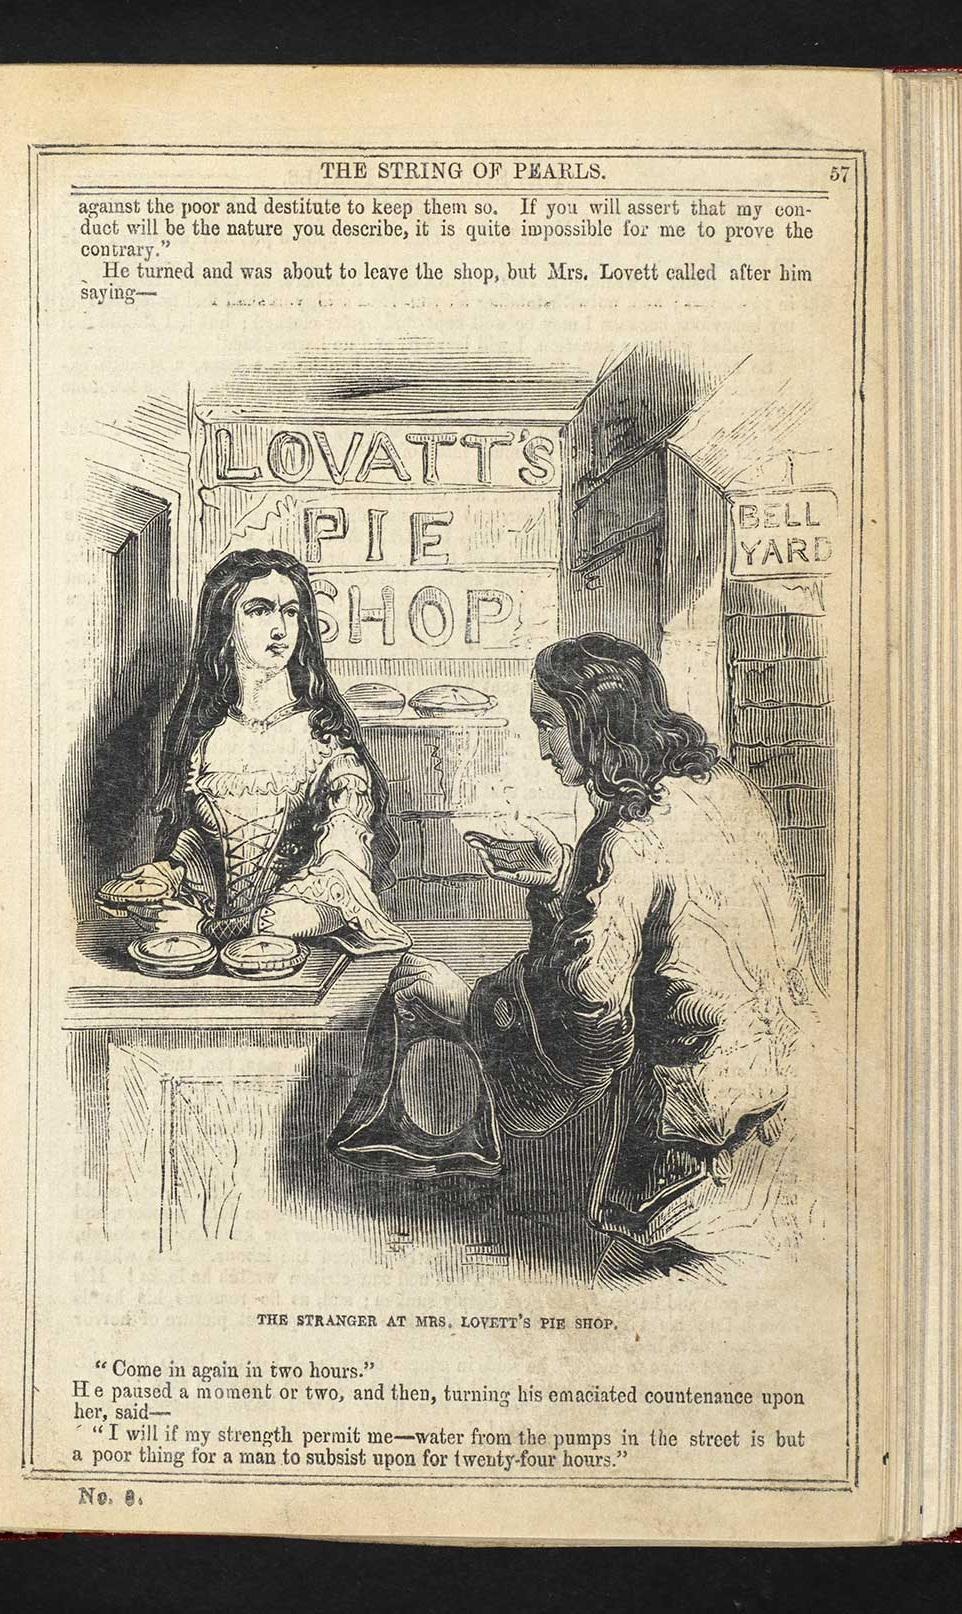 The String of Pearls , the Penny Dreadful that first introduced the characters of Sweeney Todd and Mrs. Lovett. Source: www.bl.uk/romantics-and-victorians/articles/penny-dreadfuls#